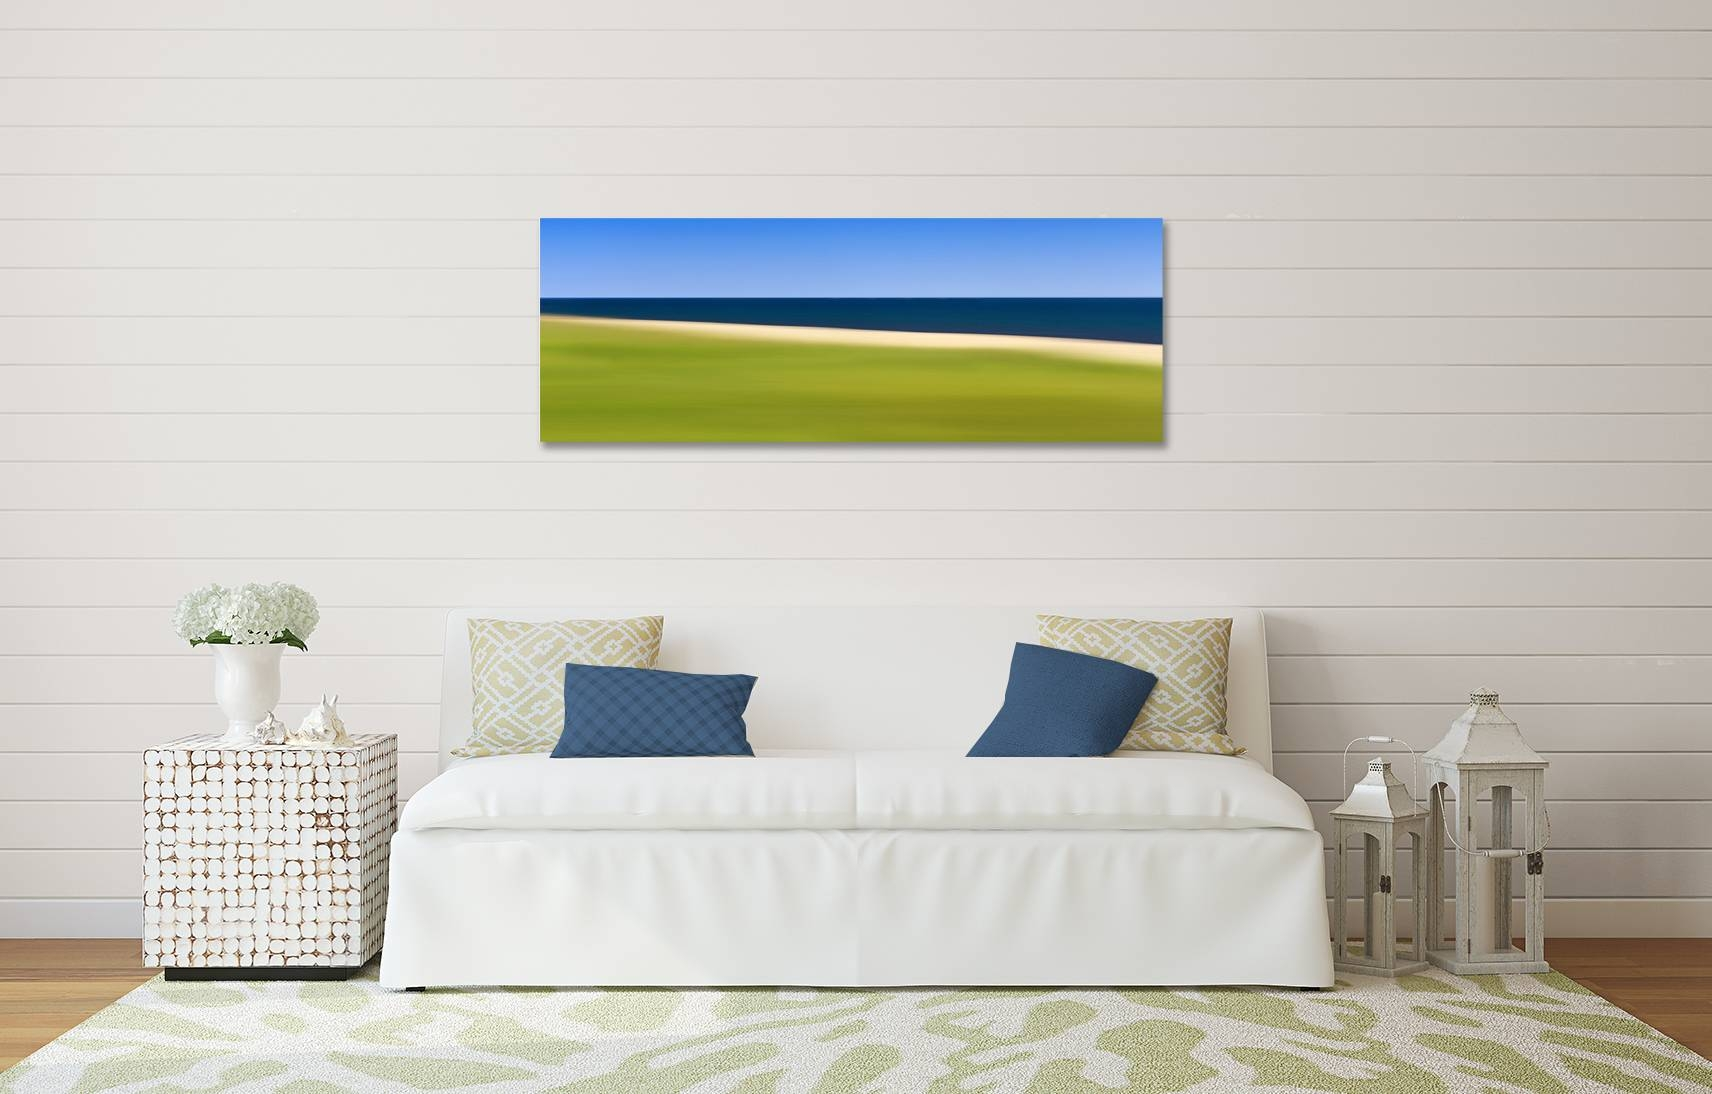 Fine Art Prints For Sale | Abstract Art, Large Canvas Wall Art With Regard To Most Popular Coastal Wall Art (View 3 of 12)